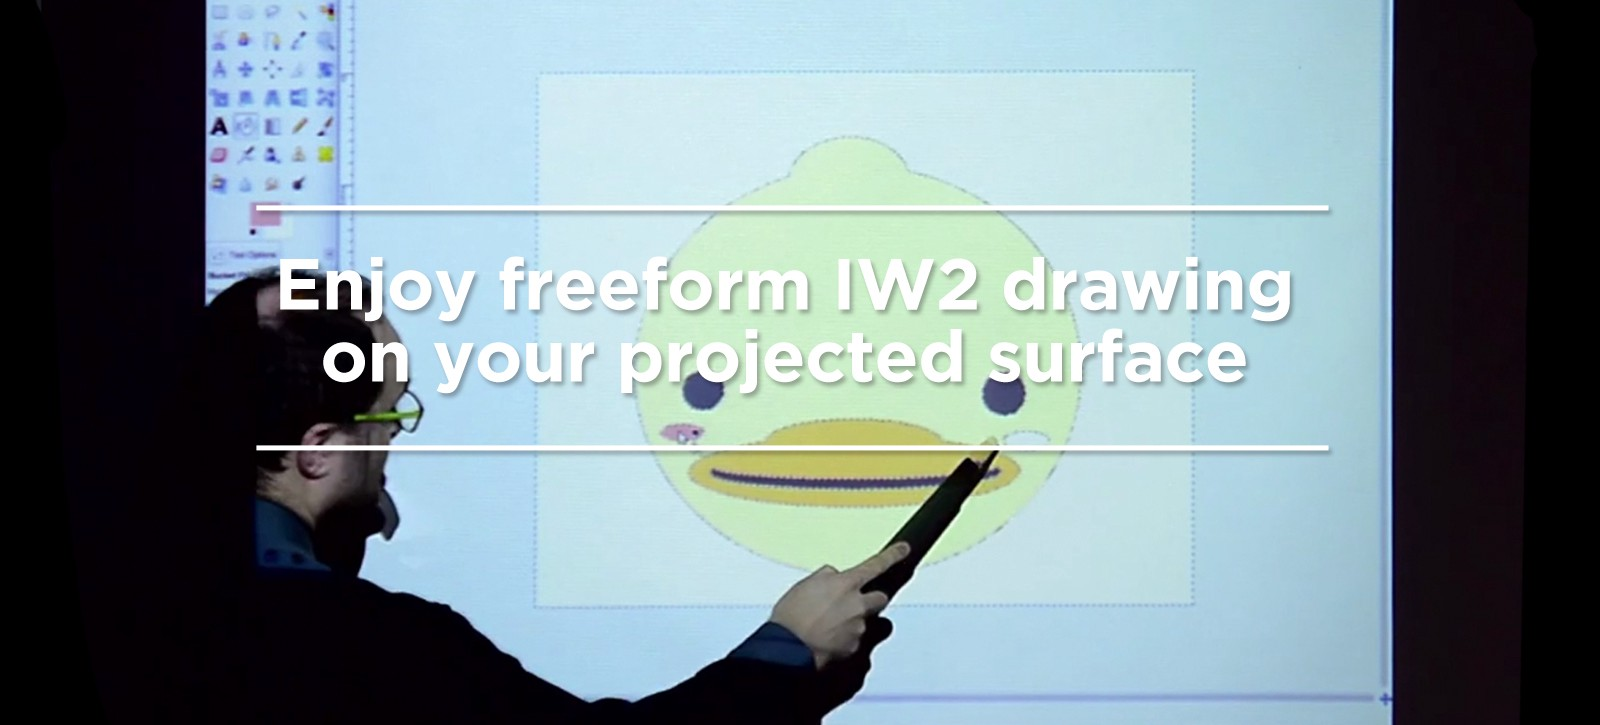 Enjoy freeform IW2 drawing on your projected surface